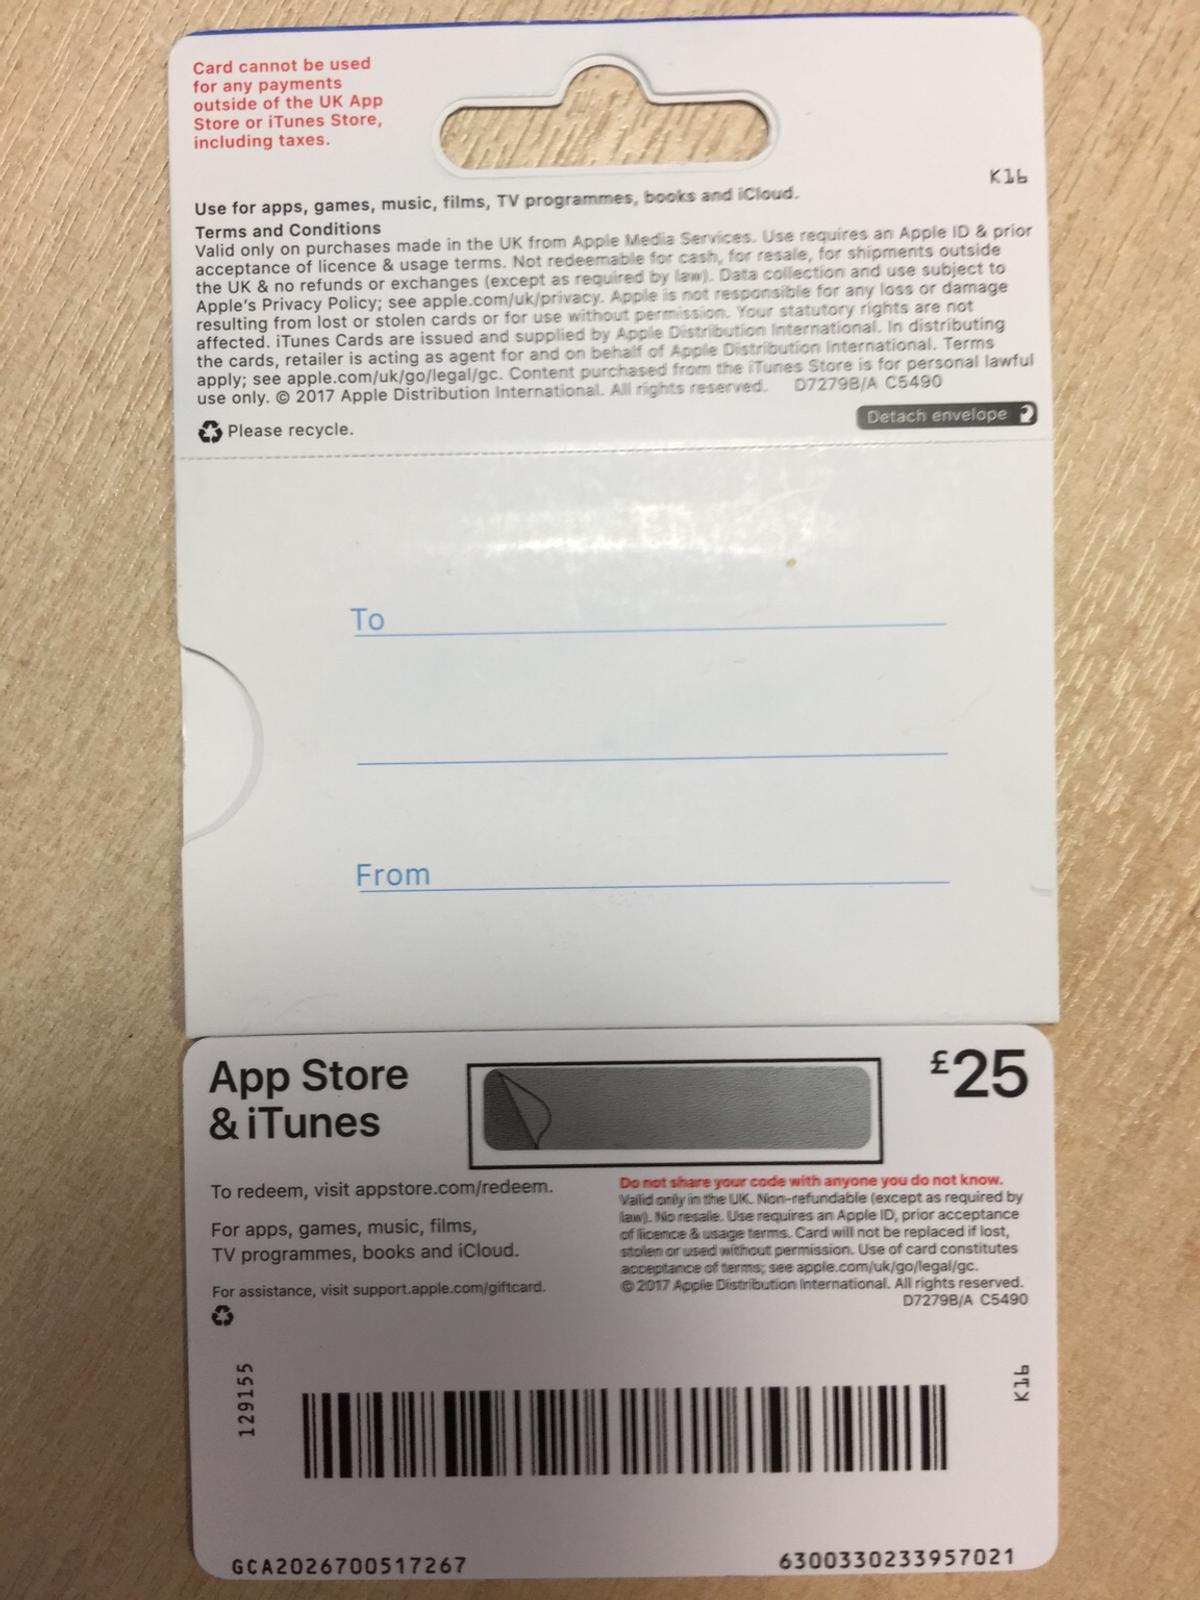 App Store & iTunes £25 gift card